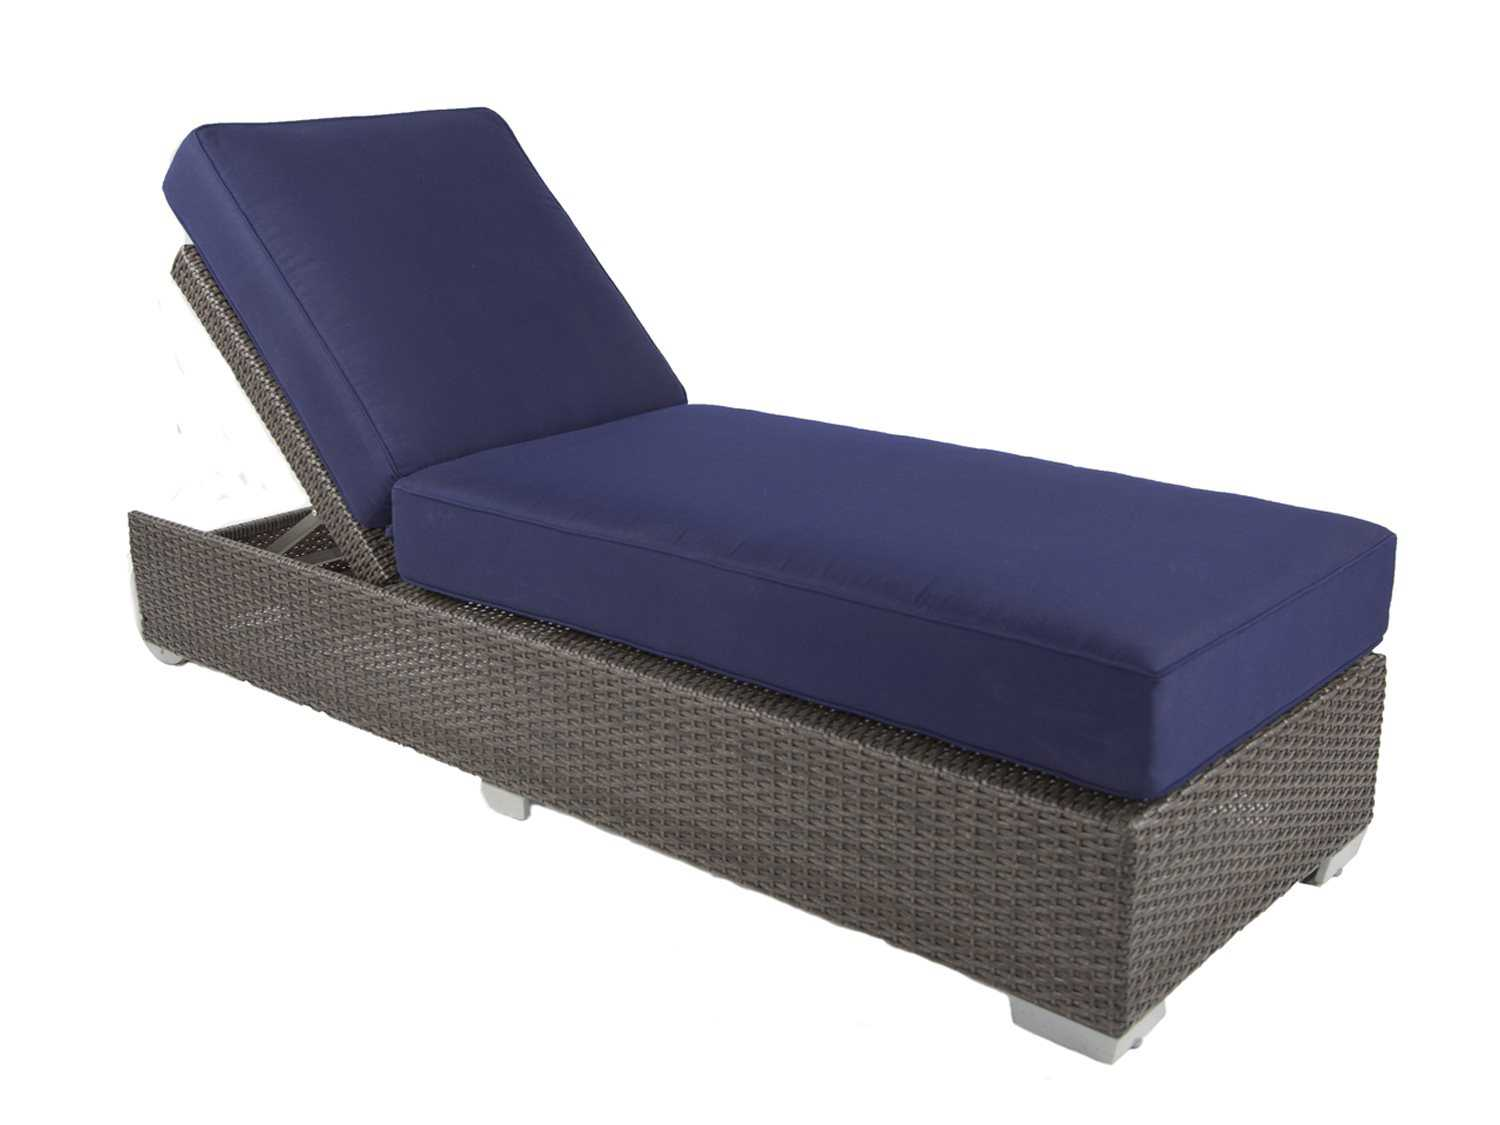 Patio heaven signature wicker single chaise pasbc1 for Chaise longue cushion